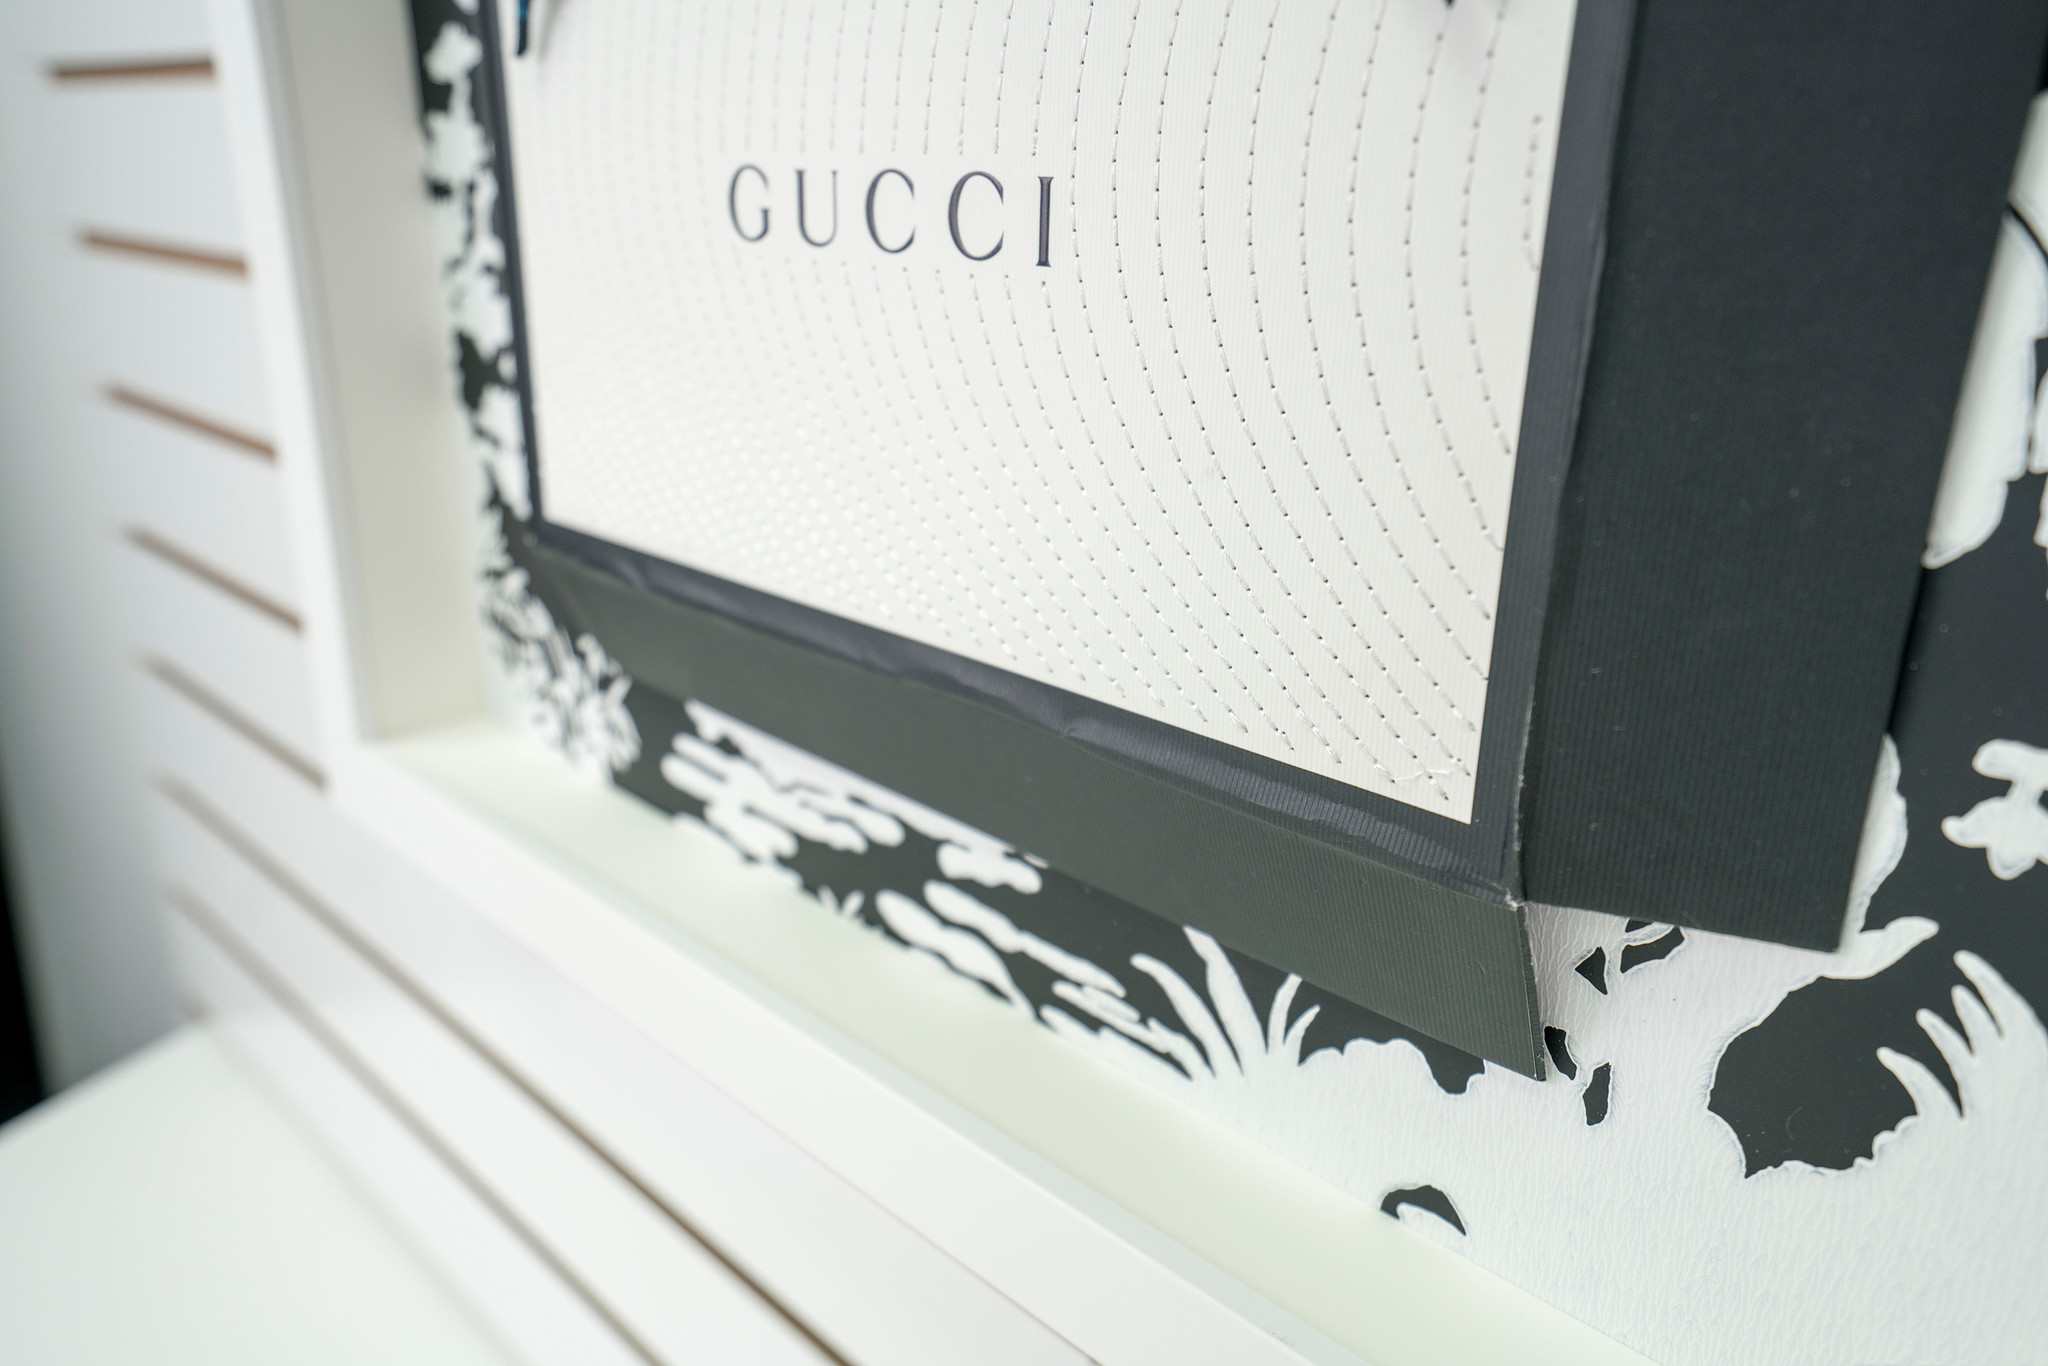 Gucci Crows Detail Name